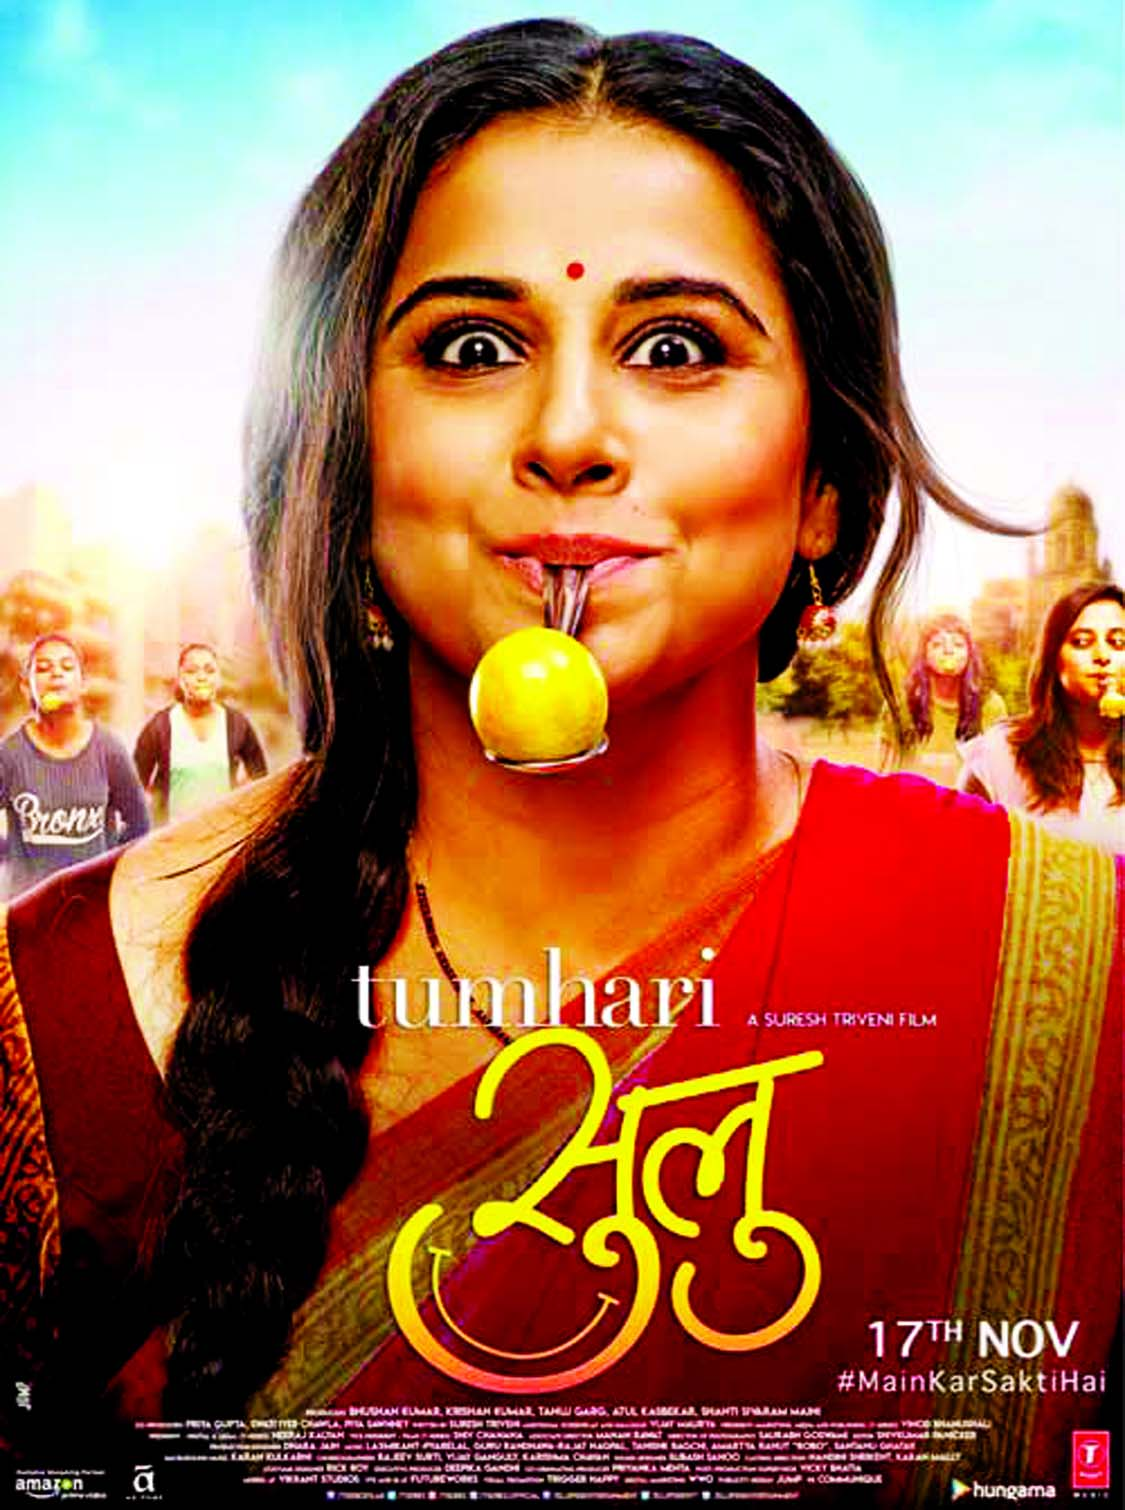 Tumhari Sulu is already a hit